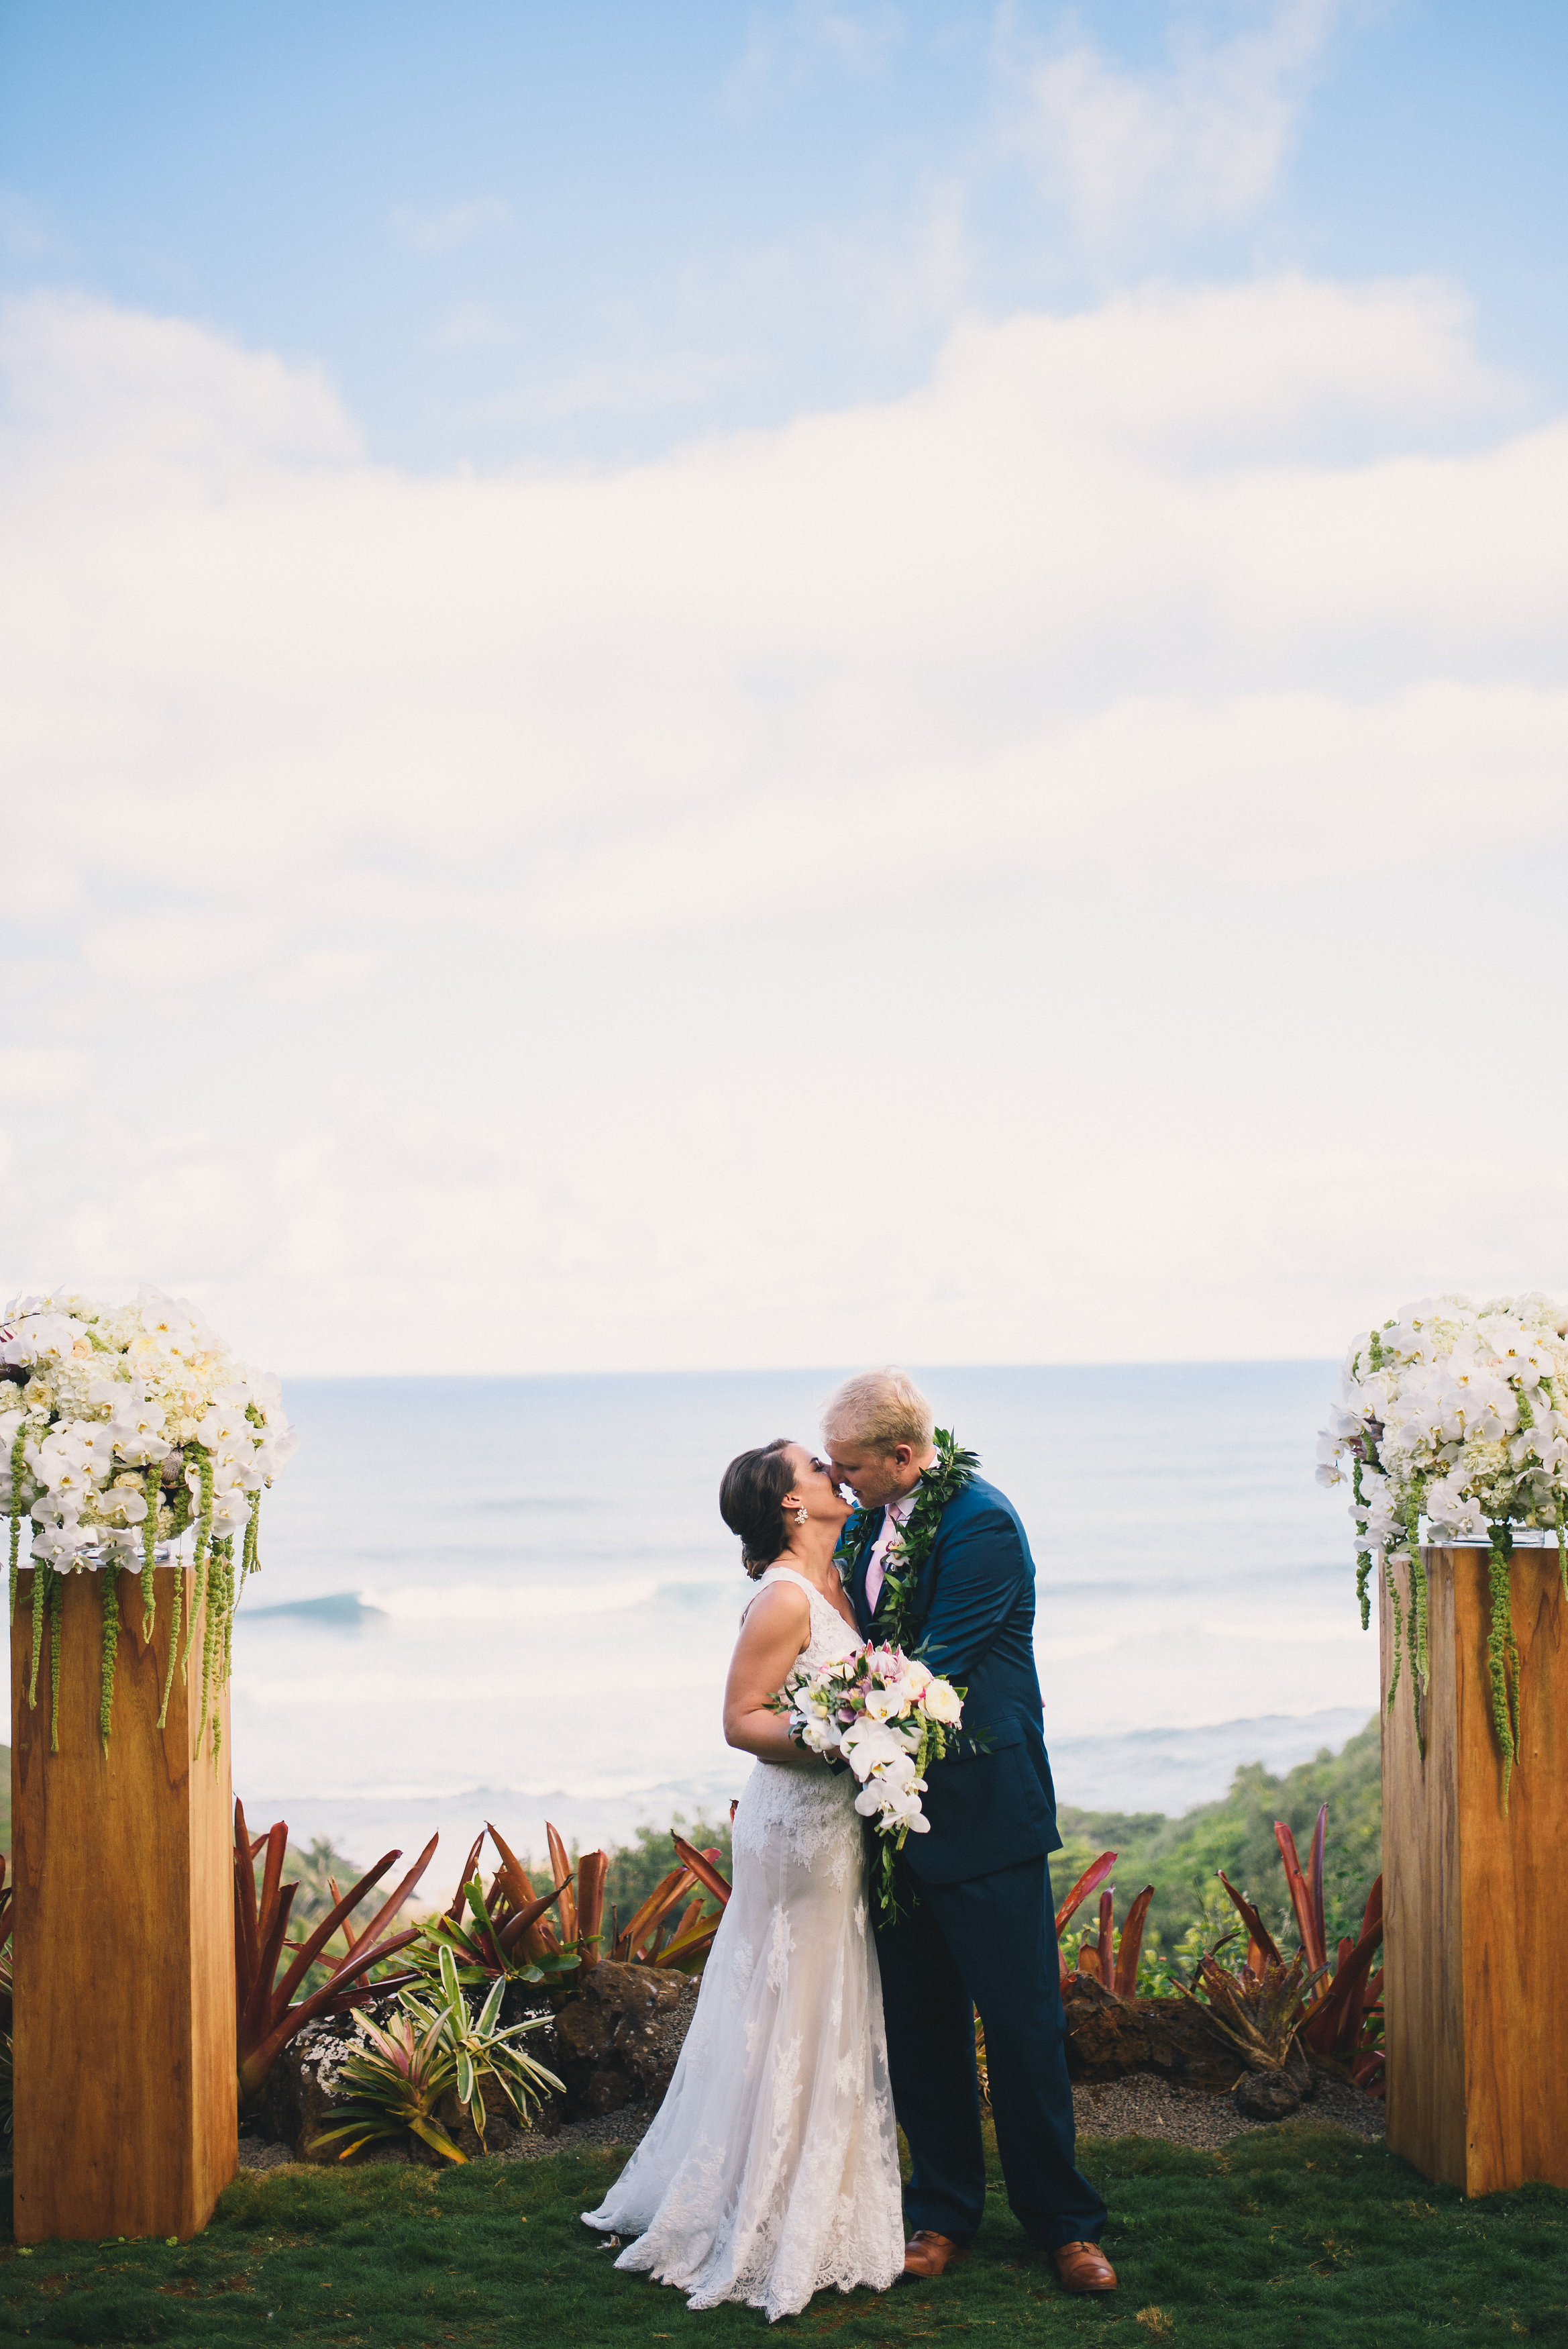 Elope at One of Our Signature, Ocean Front, Venues in Kauai, Hawaii